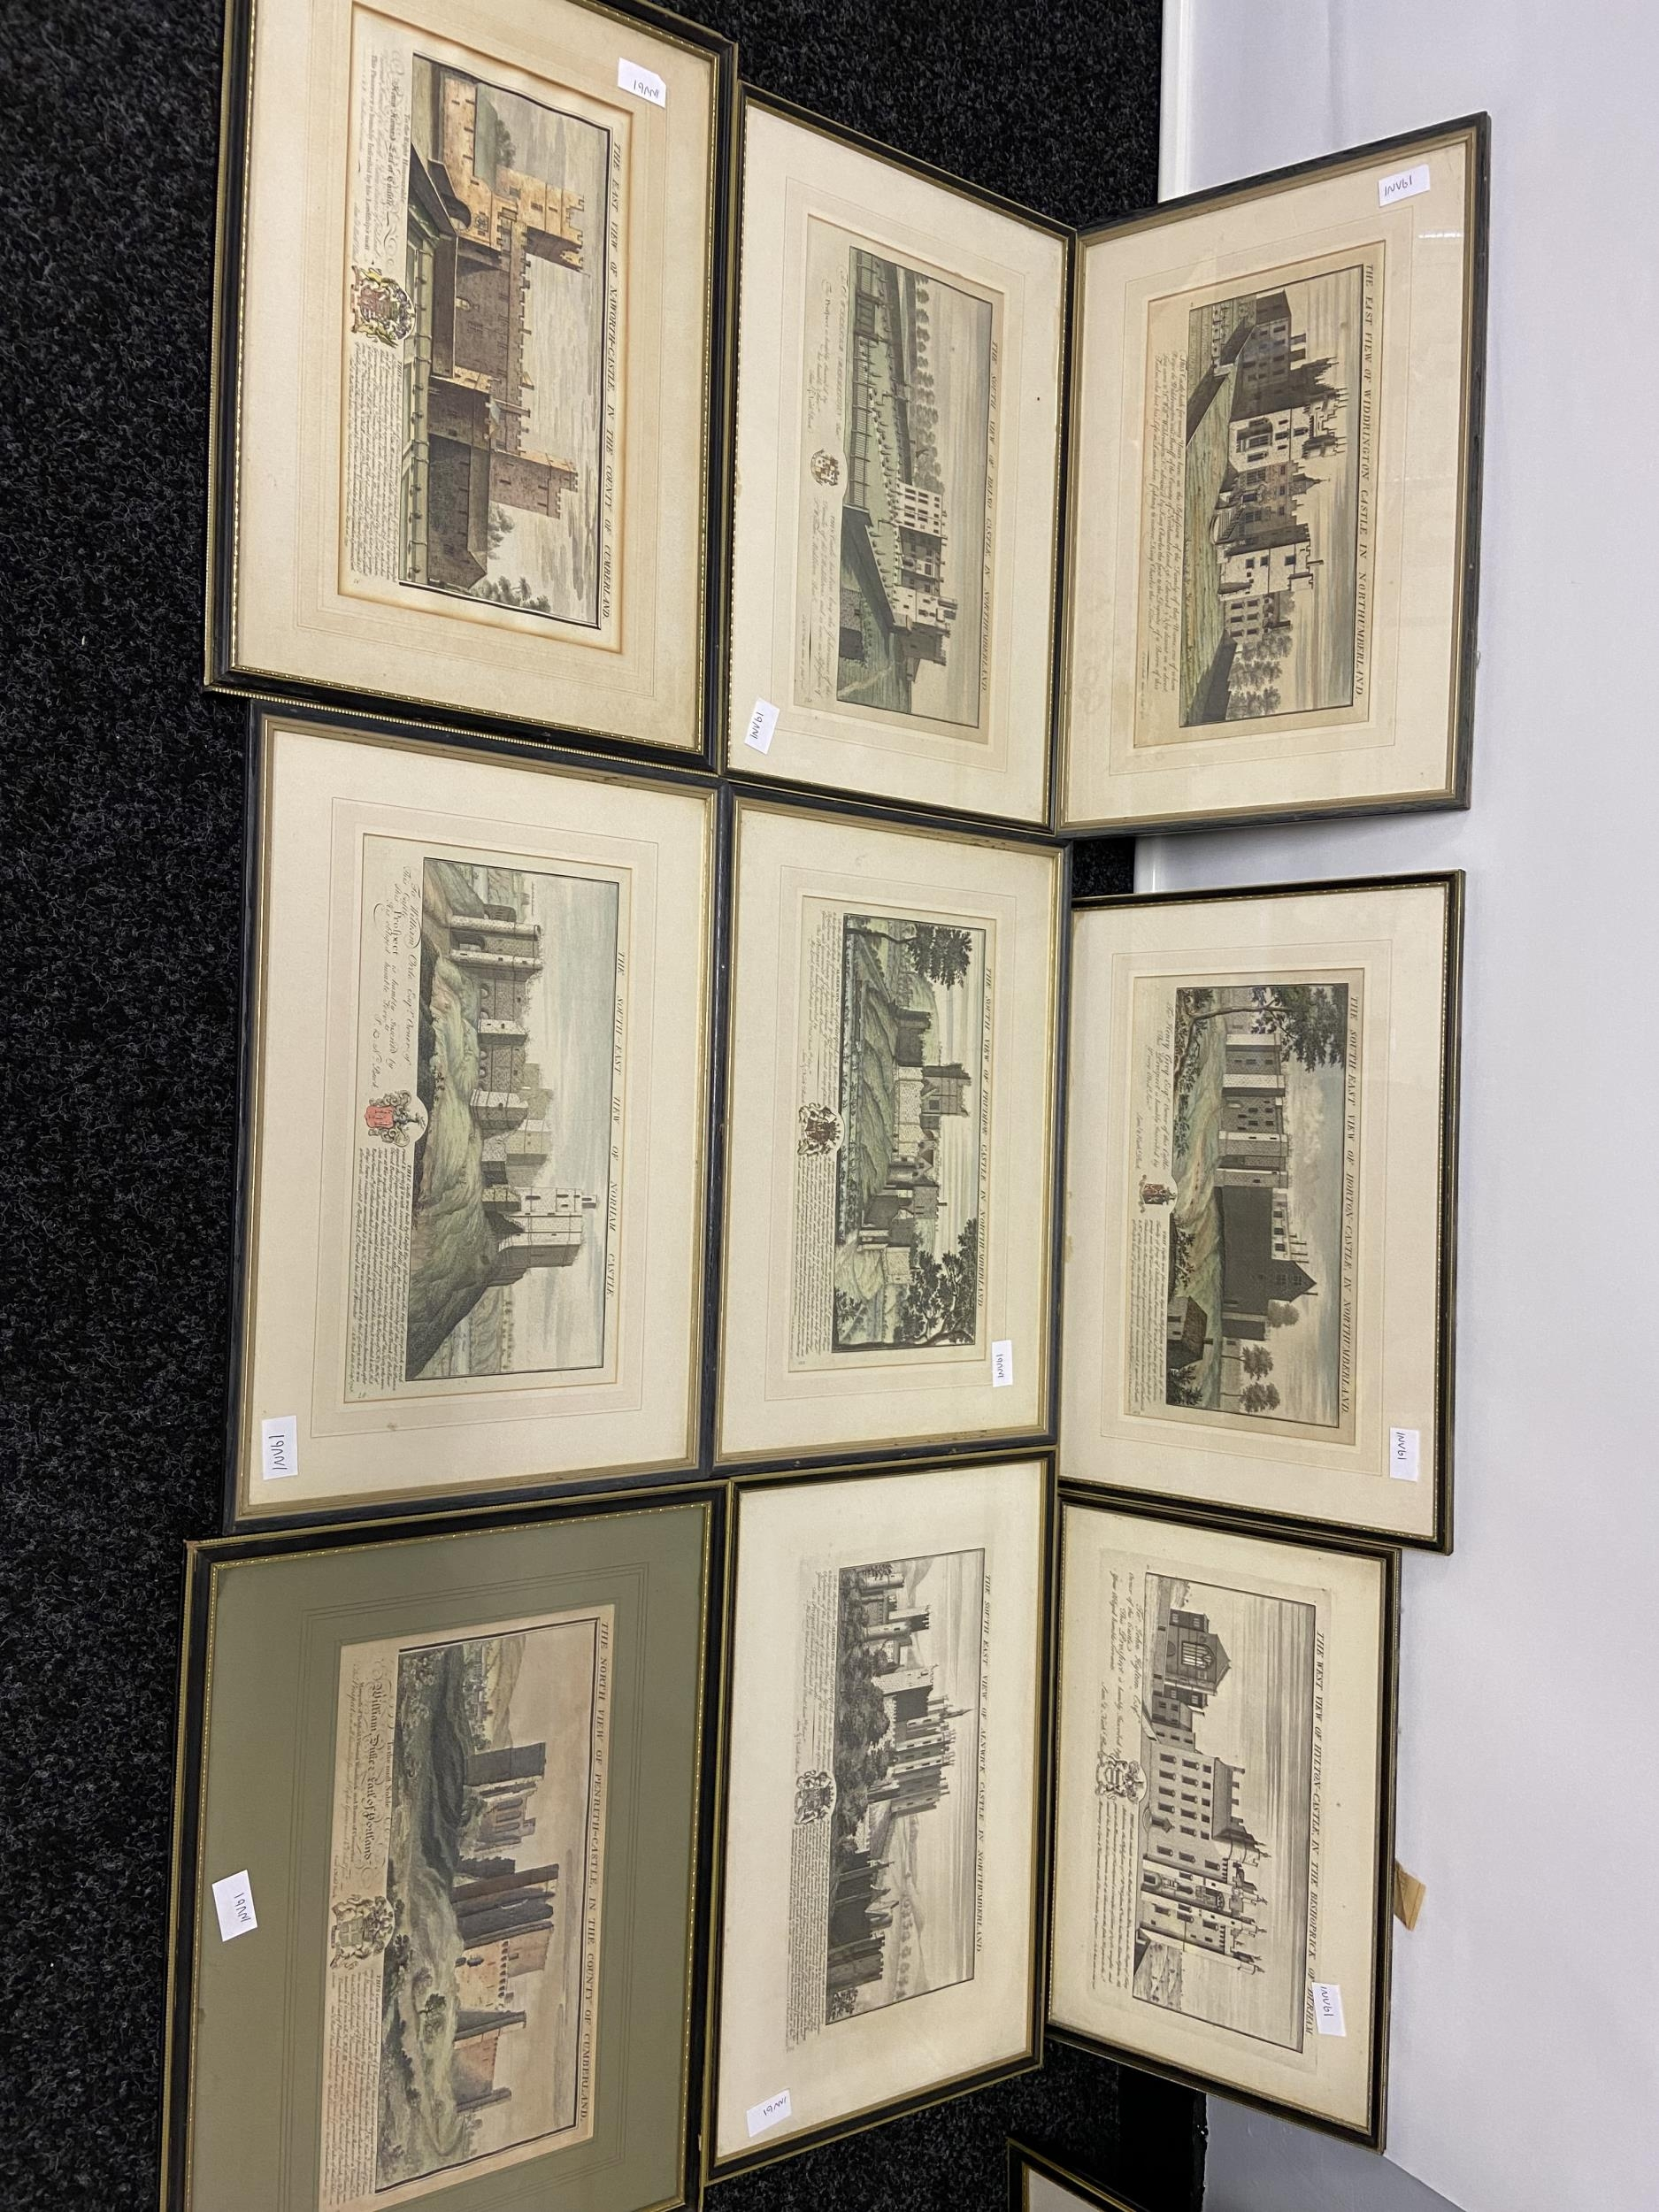 A Collection of 18th century coloured engraving of landmarks of Northumberland, Durham, Norham